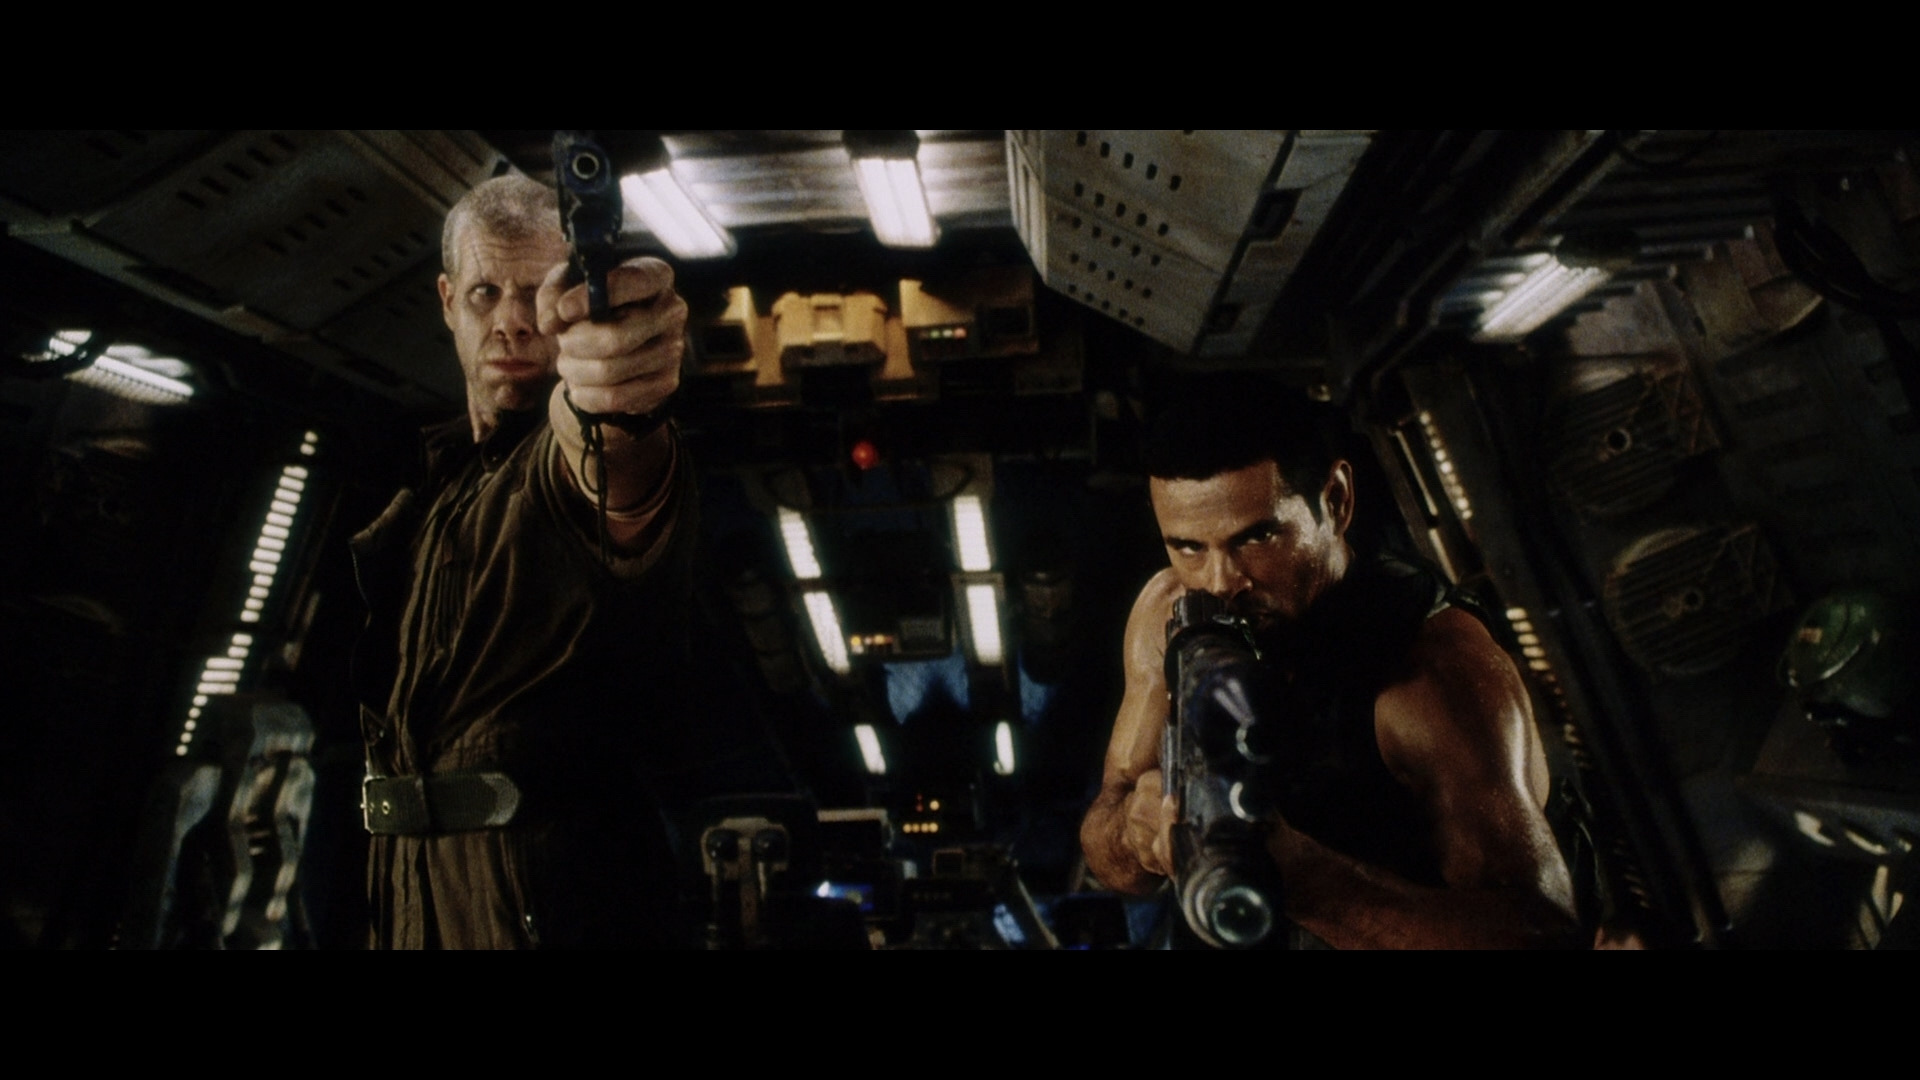 ALIEN RESURRECTION (1997) - Light-Up AR-2 Rifle - Image 19 of 19